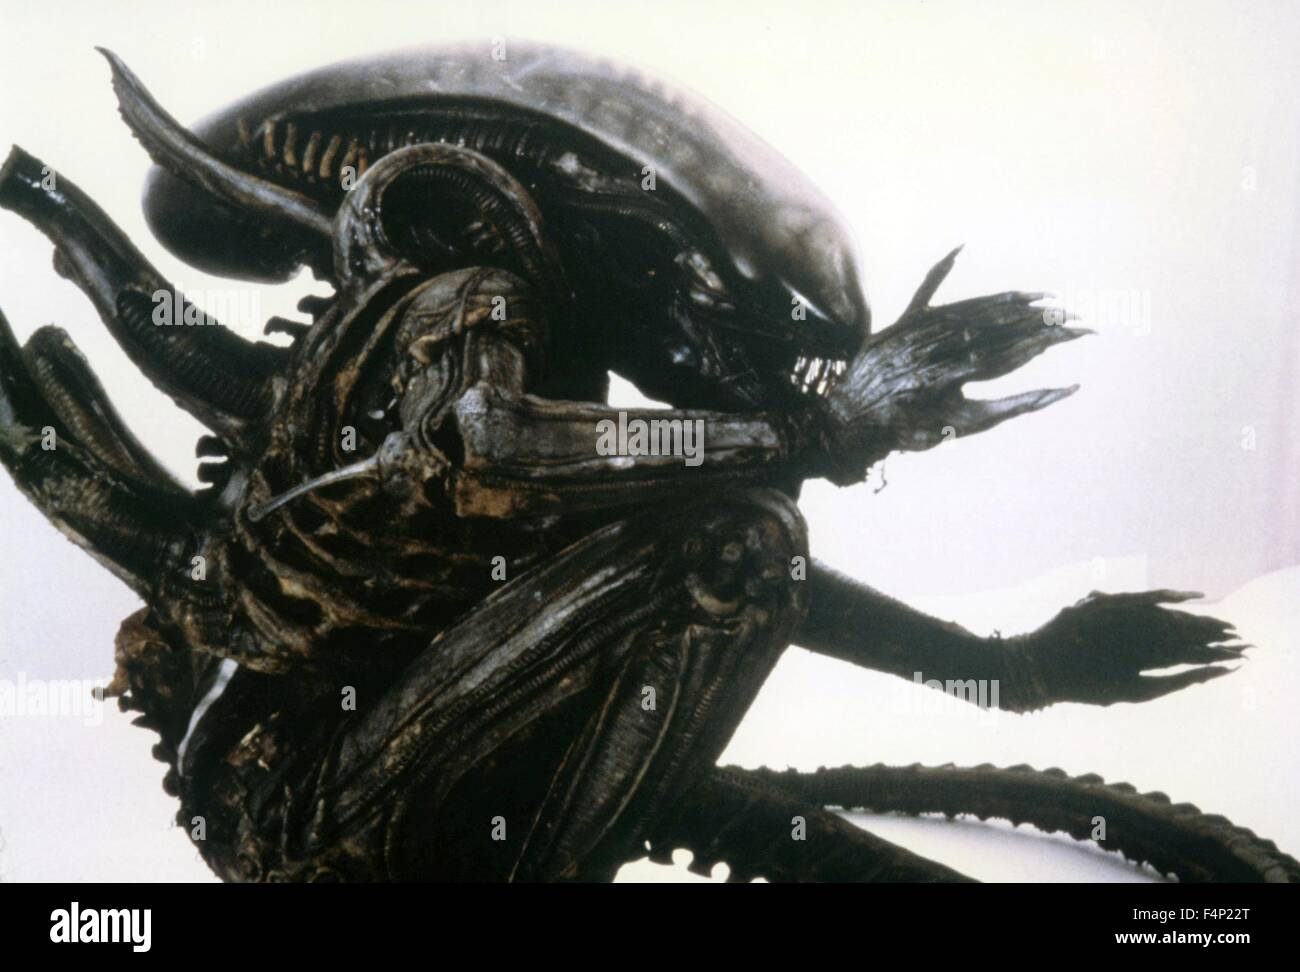 Alien 1979 directed by Ridley Scott - Stock Image